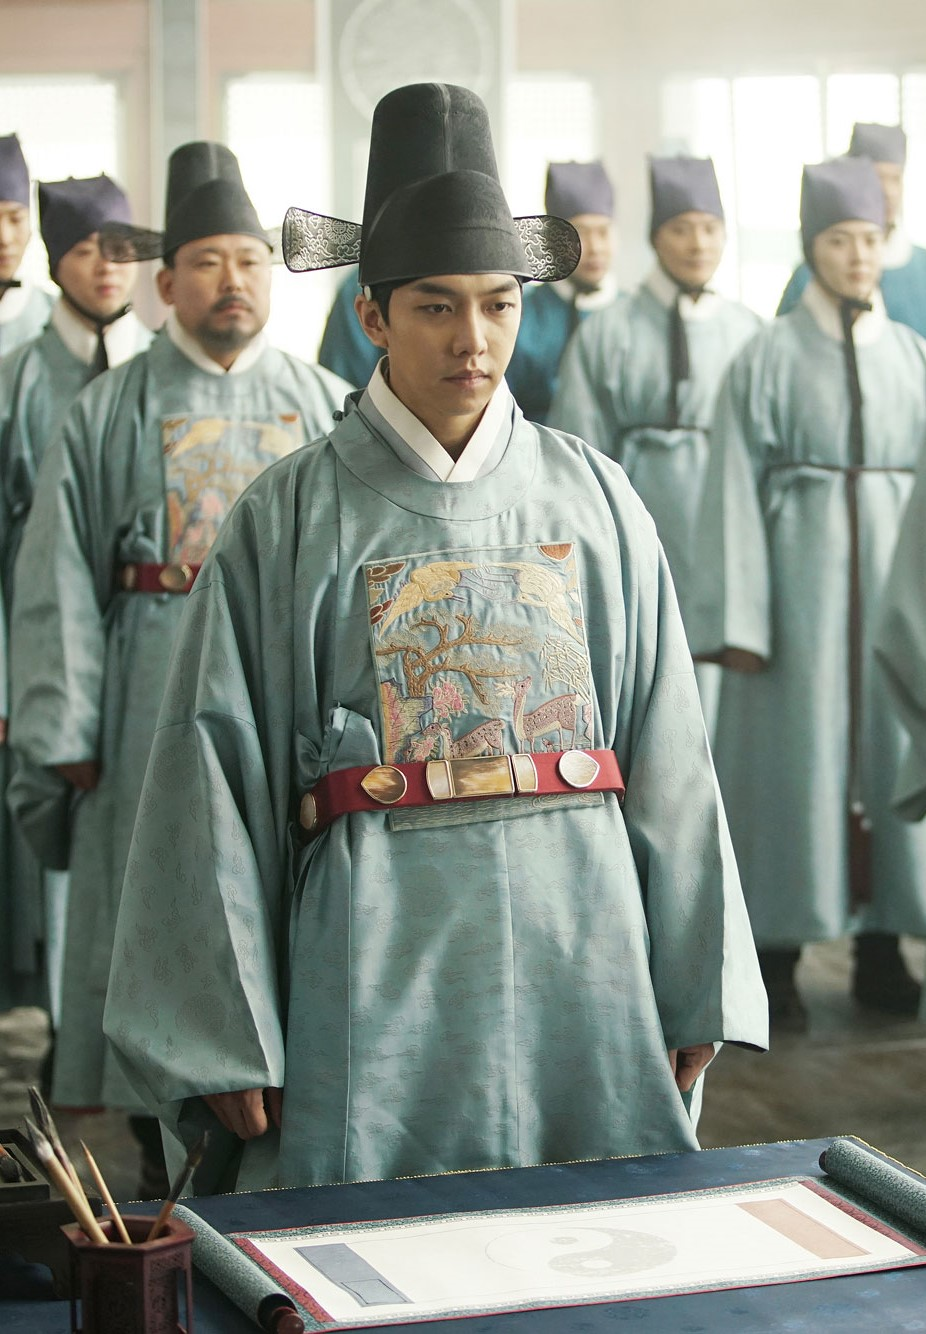 HISTORICAL DRAMA, KOREAN HISTORICAL DRAMA, KOREAN ACTOR, KOREAN ACTOR HISTORICAL DRAMA, HANDSOME KOREAN ACTOR, KOREAN COSTUME, KOREAN ACTOR LONG HAIR, KOREAN ACTOR KING, KOREAN ACTOR CROWN PRINCE, KOREAN ACTOR PRINCE, LEE SEUNGGI, YOON SIYOON, PARK BOGUM, YOOSEUNGHO, YEO JINGU